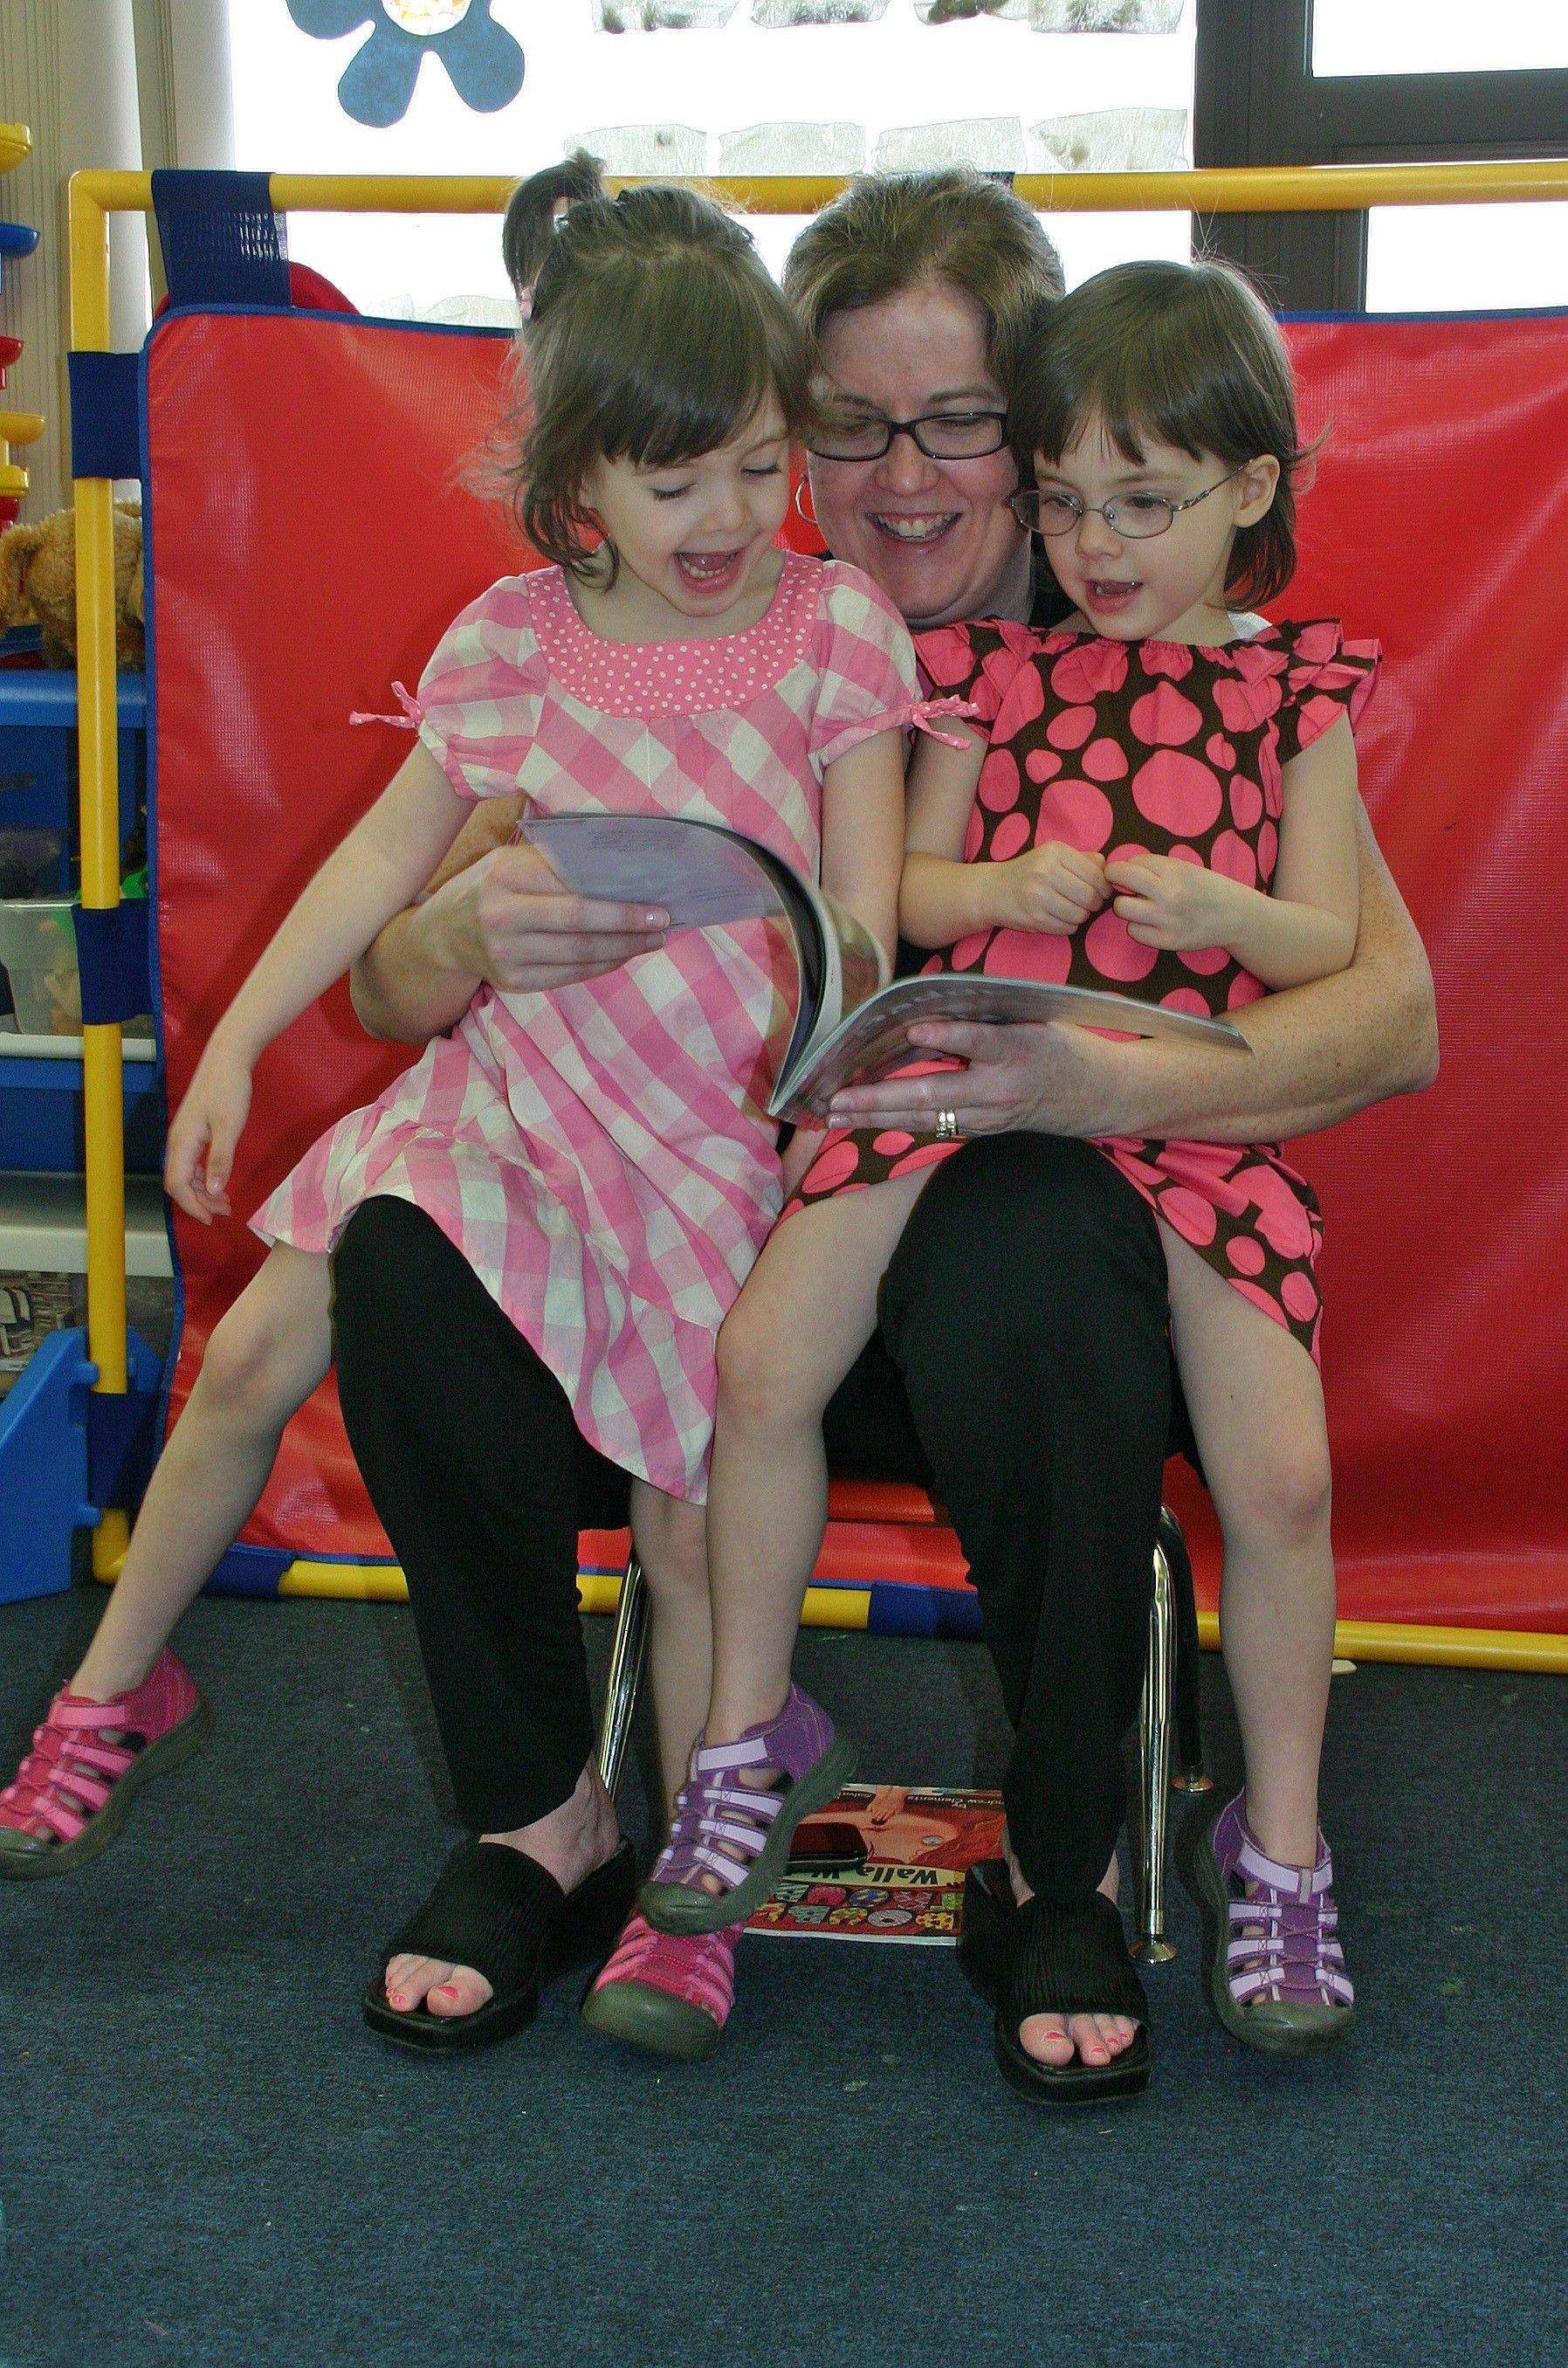 Reading is twice as much fun with twins at the fifth annual Brunch with Books on May 11 and 12 at the Des Plaines Park District.